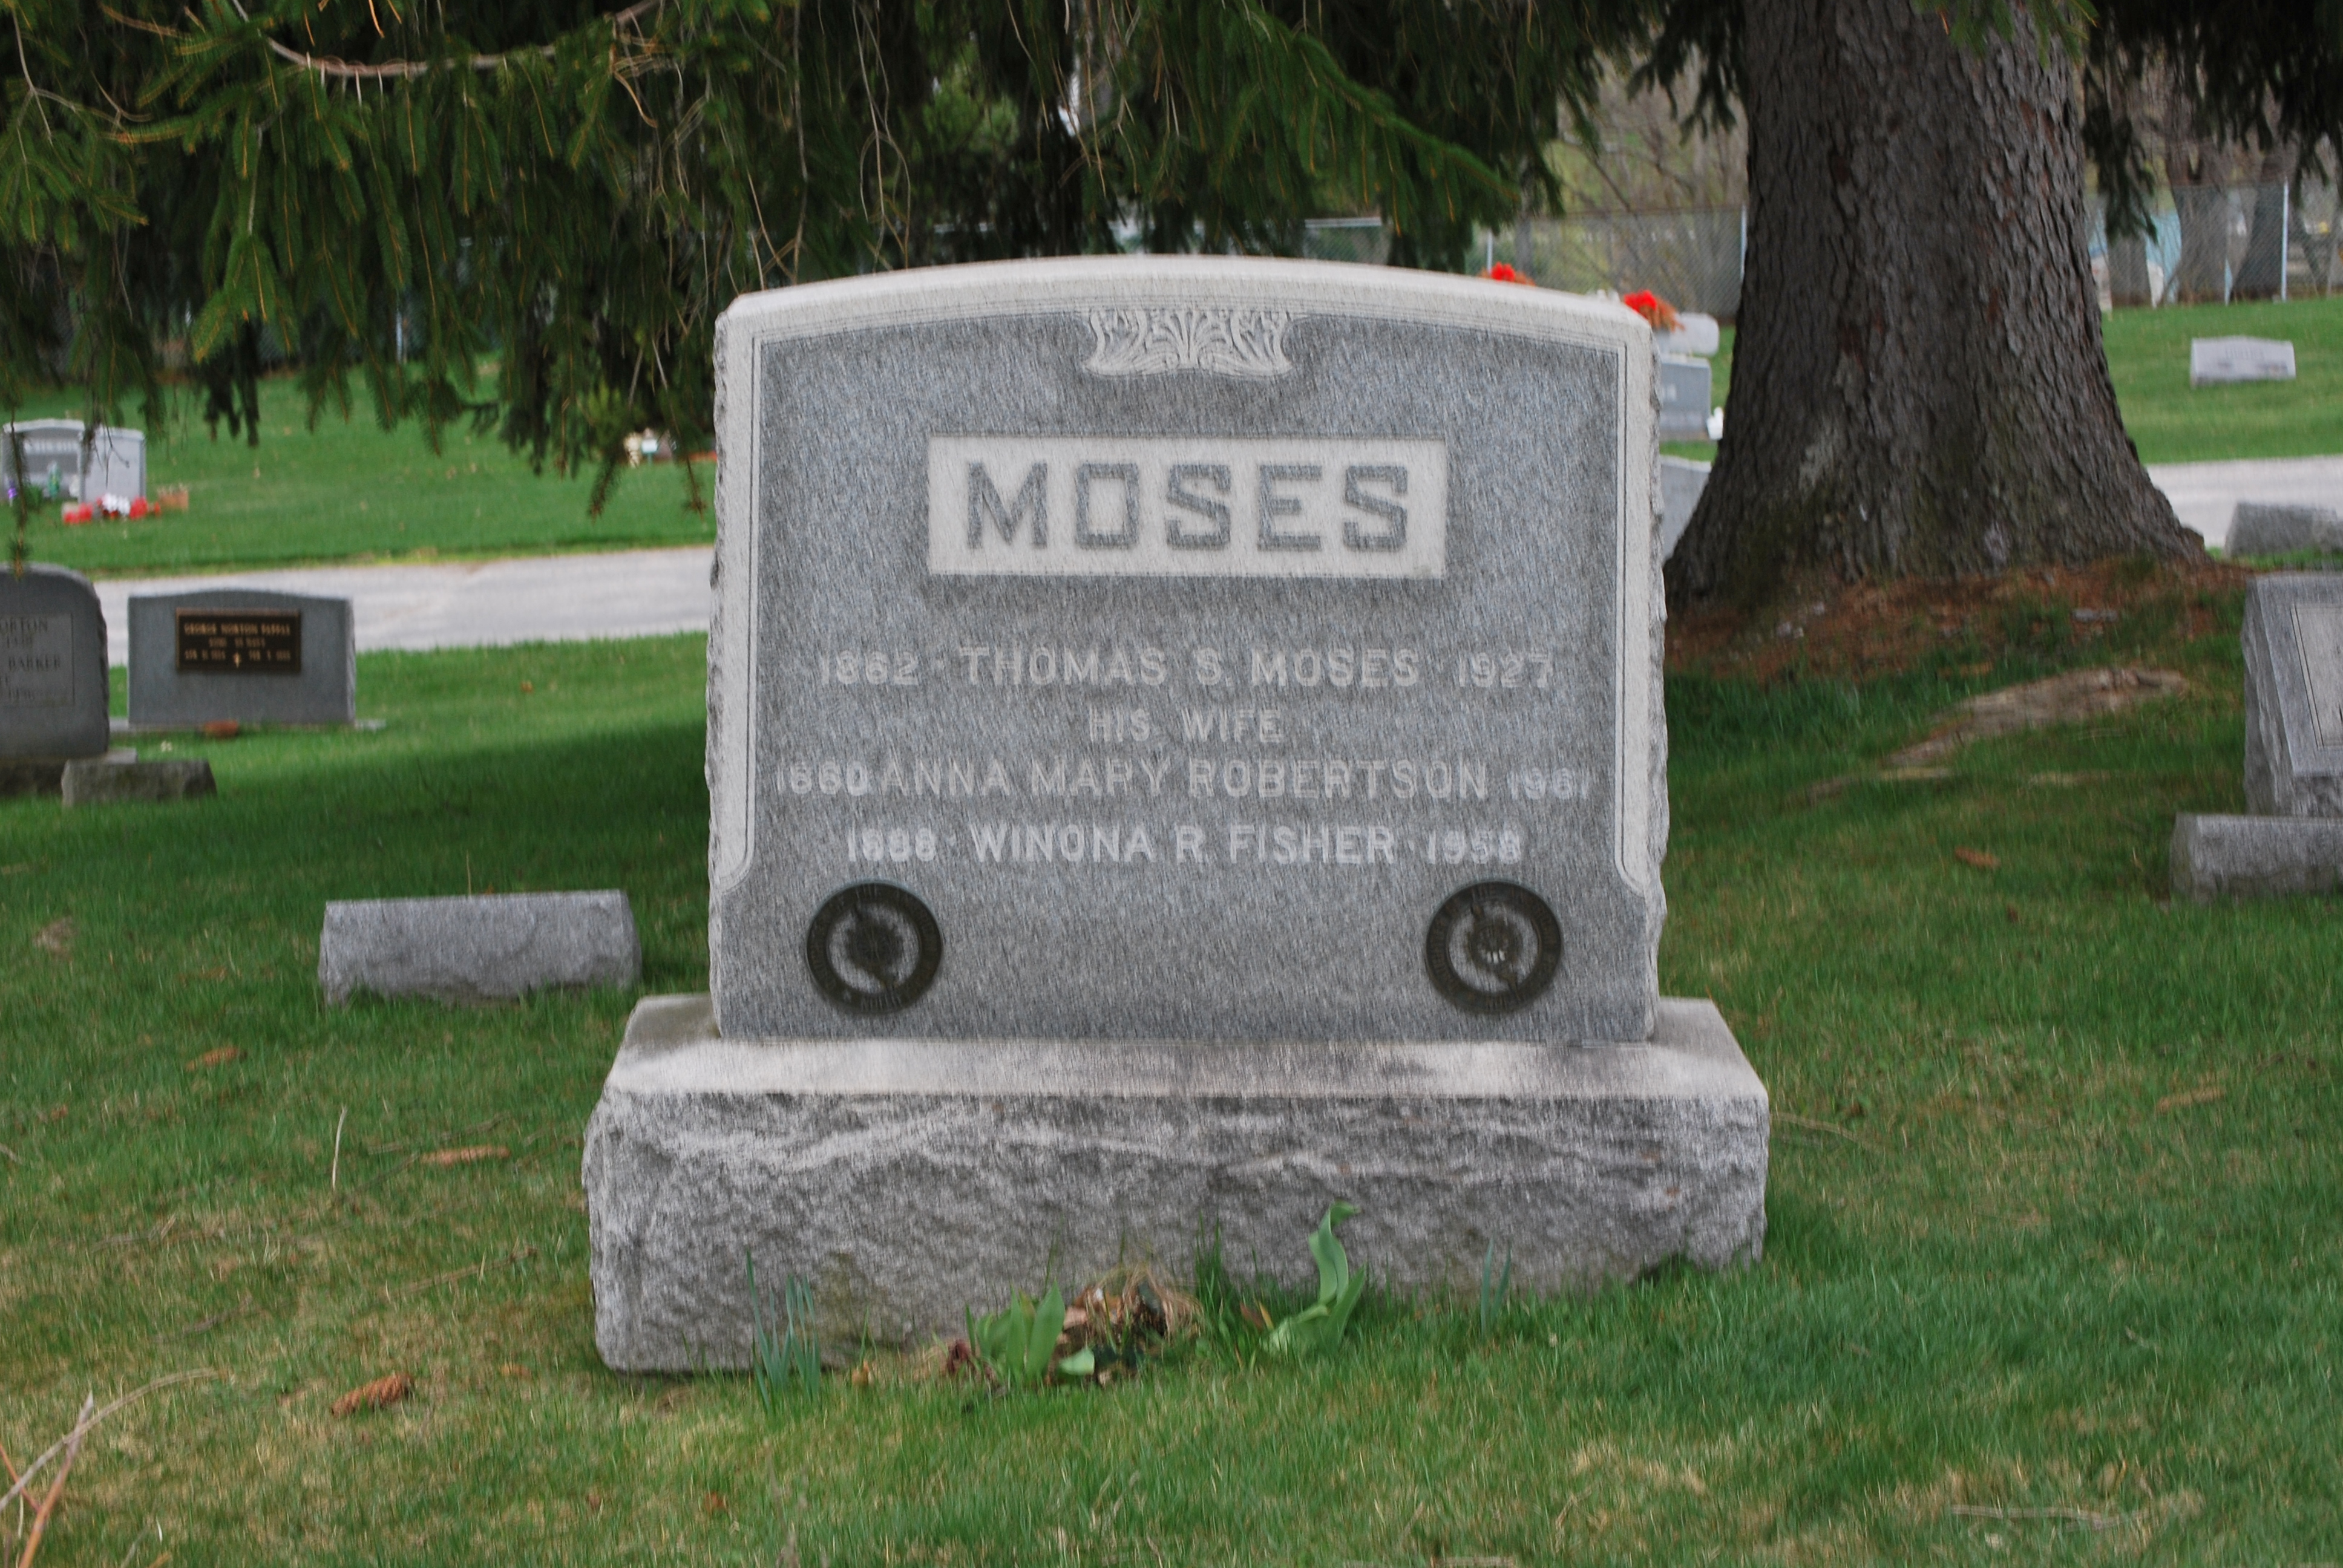 Grave of Grandma Moses in Maple Grove Cemetery in Hoosick Falls, New York. Photo taken on April 9, 2010.